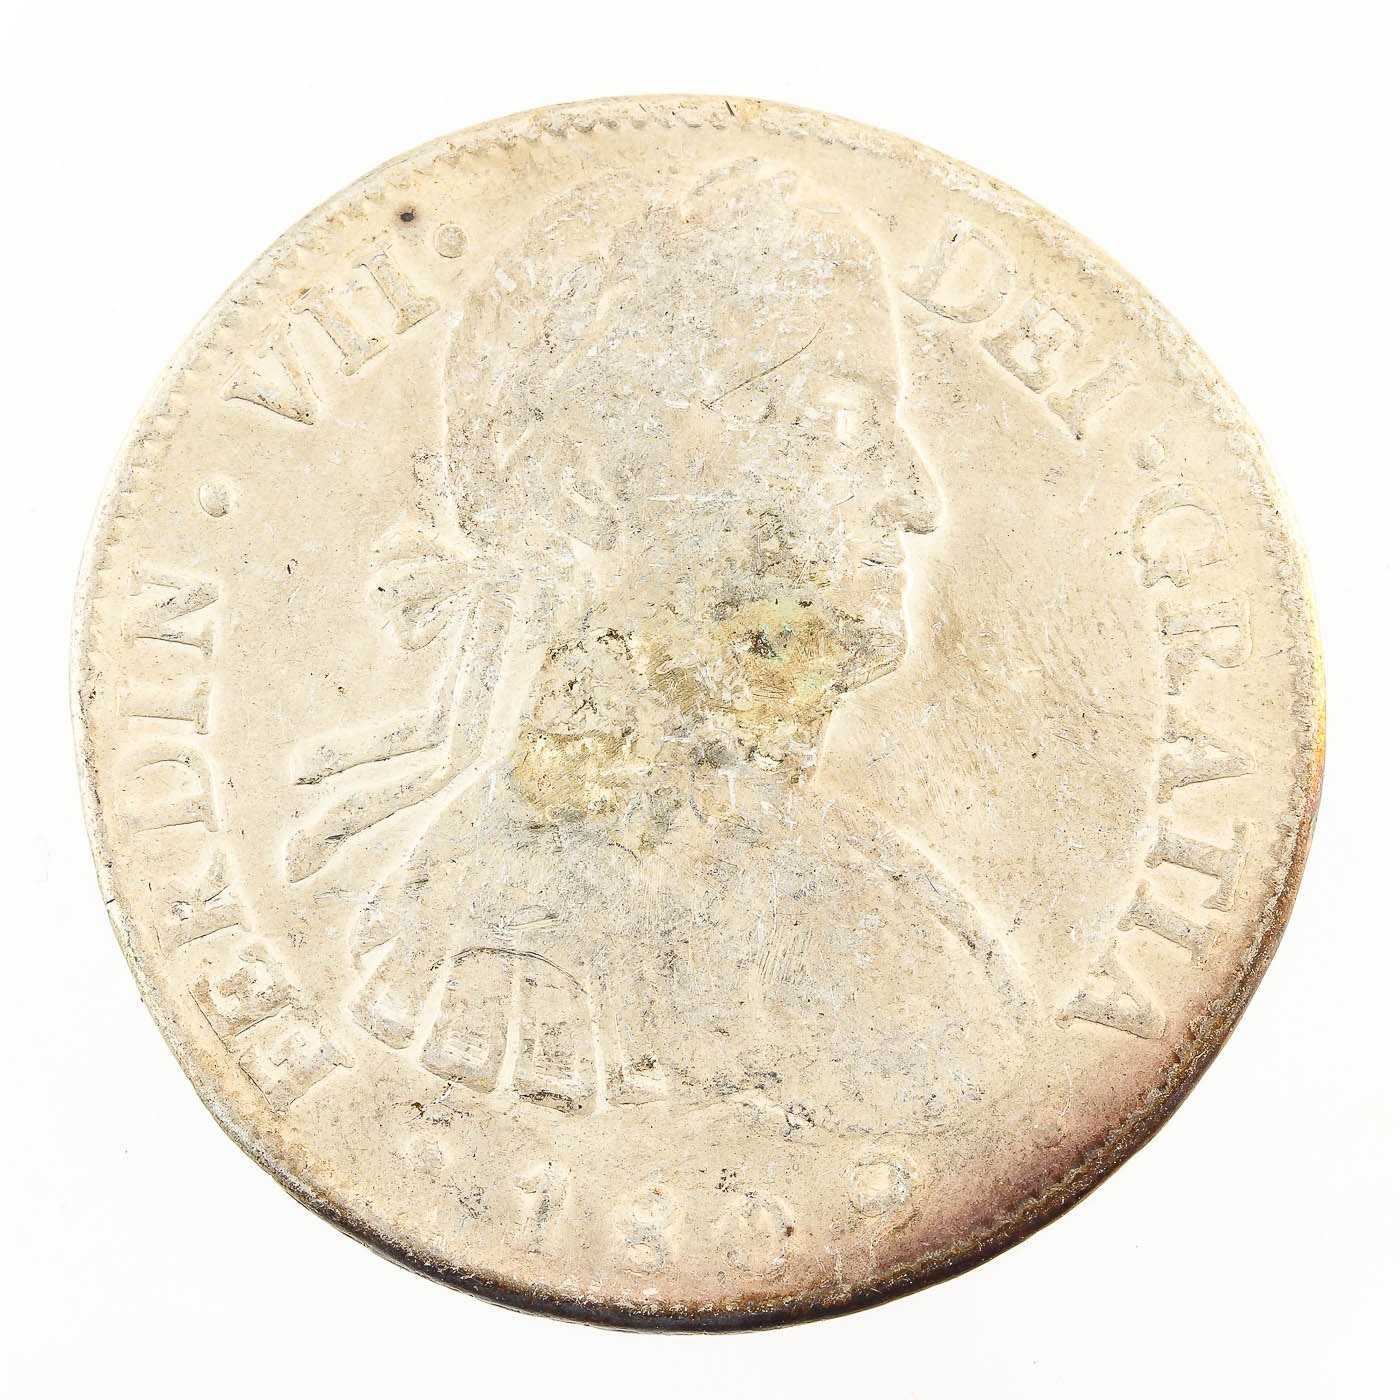 1809 Spanish Colonial 8 Reales Silver Coin